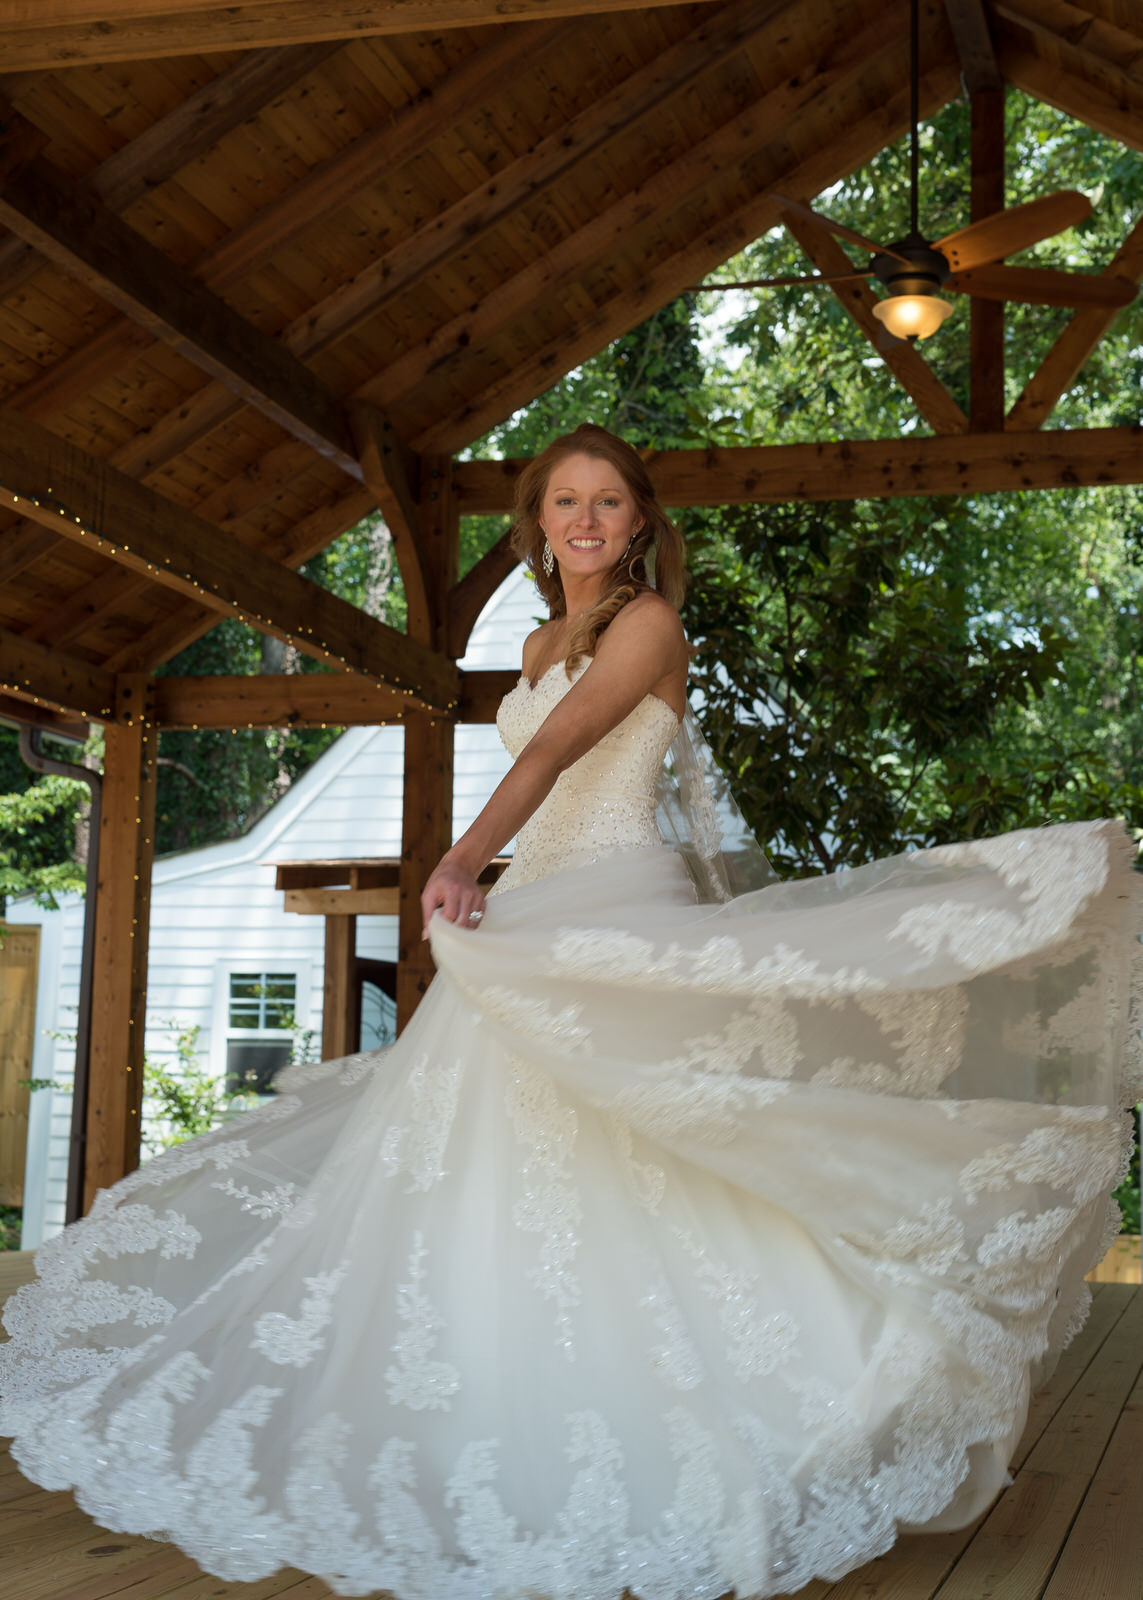 Kennesaw GA Bride twirling with dress at wedding